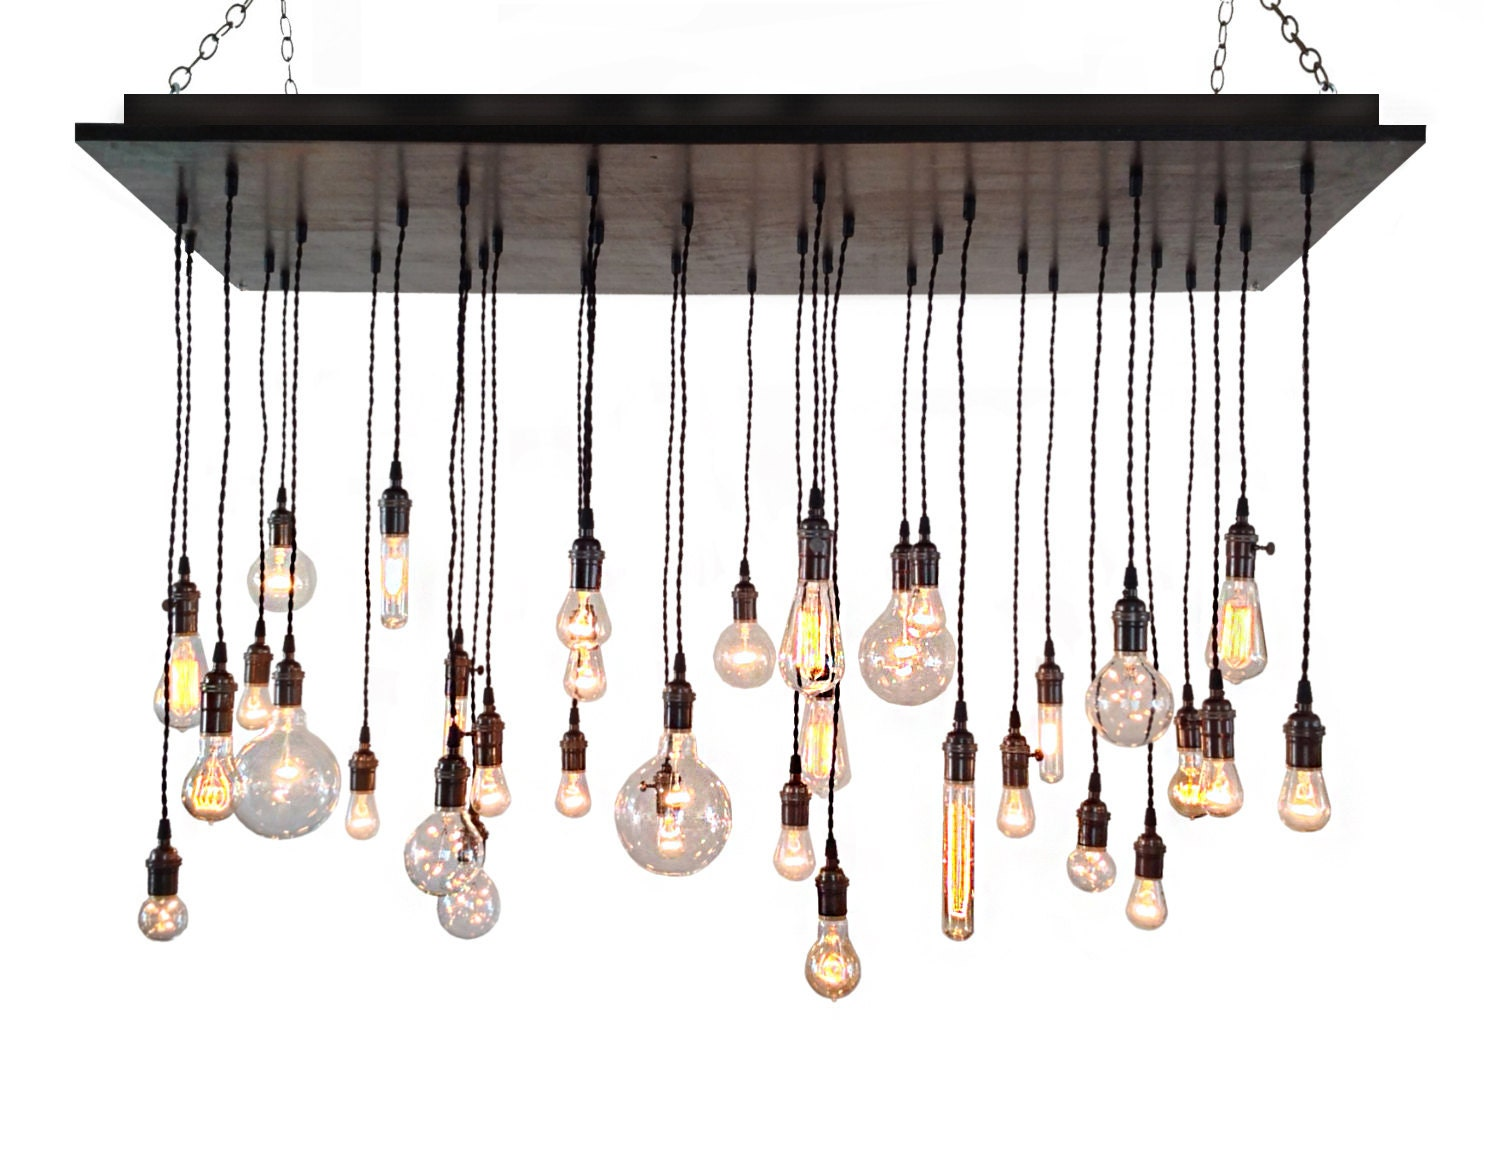 Industrial chandelier rustic lighting modern chandelier etsy